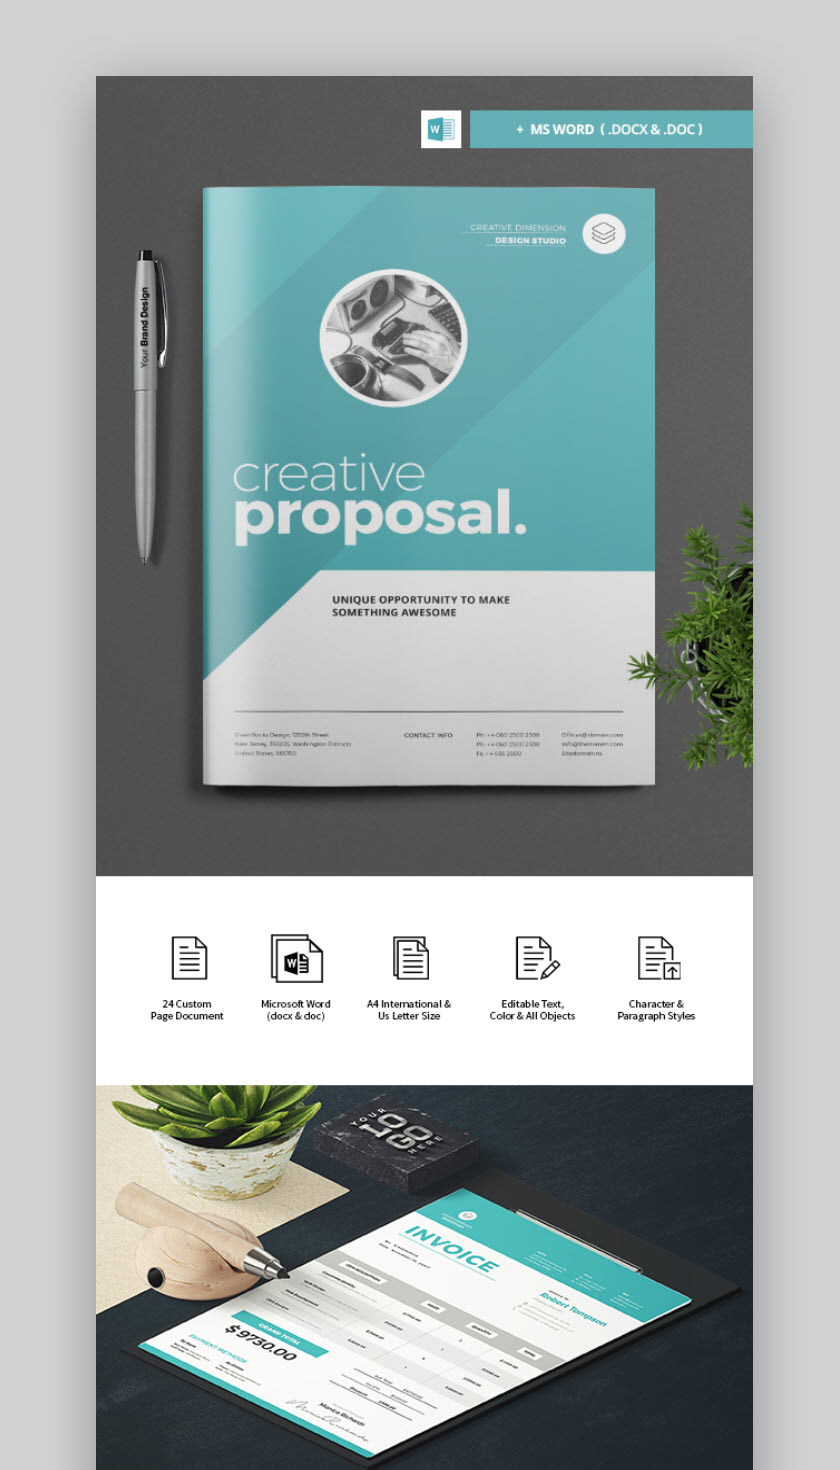 18 professional business project proposal templates for 2018 professional business proposal template with cover design flashek Images